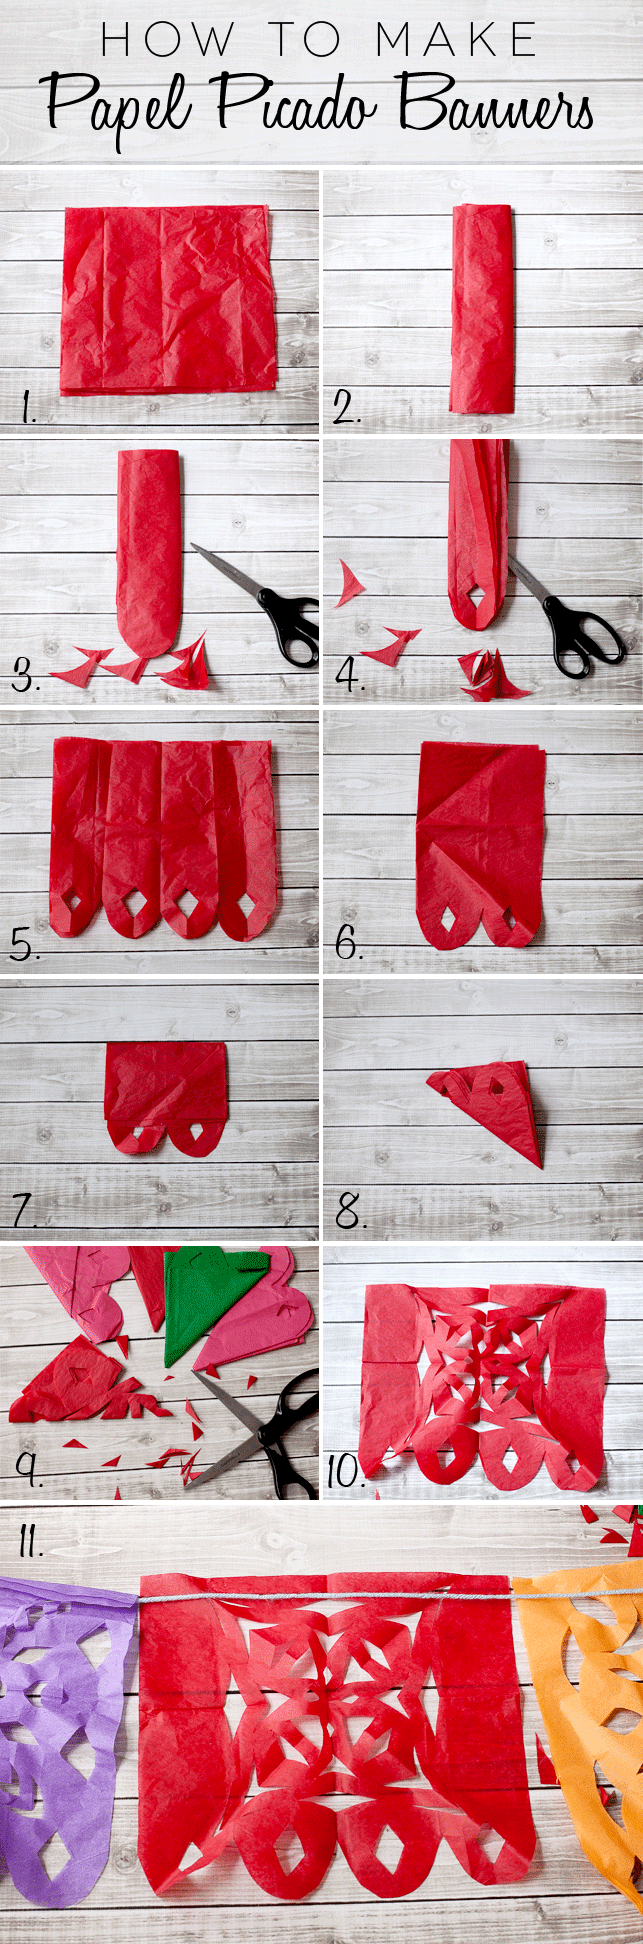 Papel Picado banner tutorial and how to